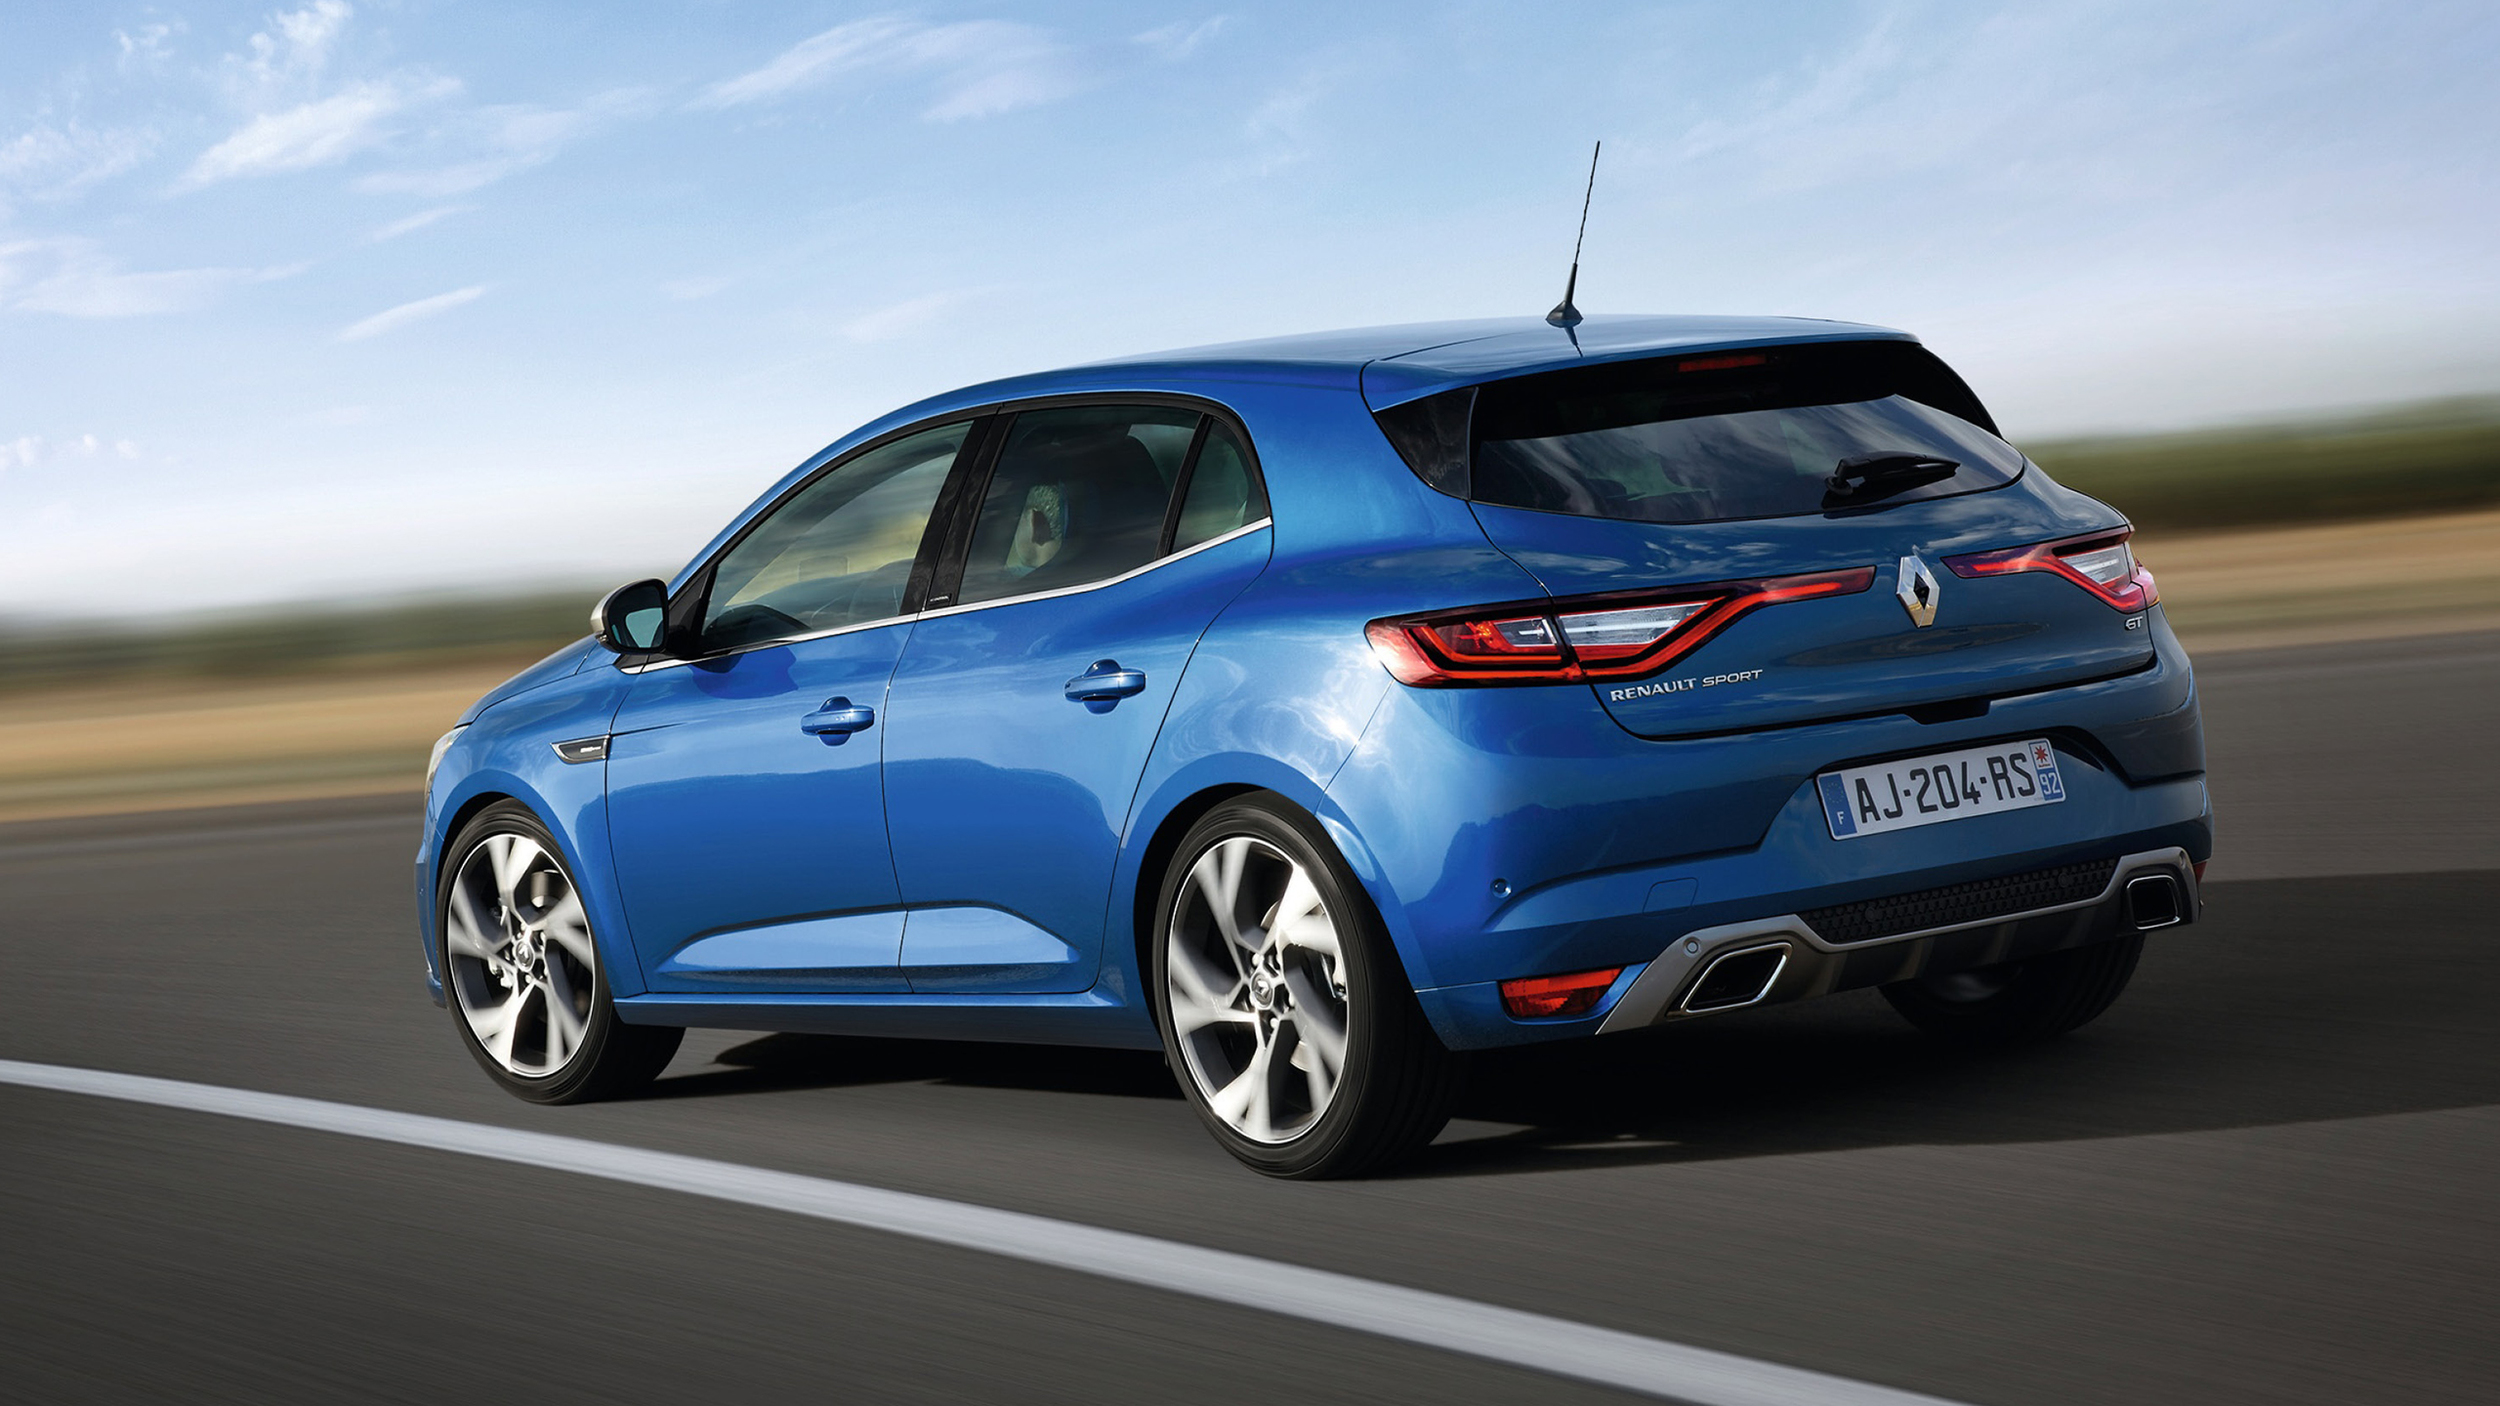 Renault has shown its all-new Megane in Frankfurt.